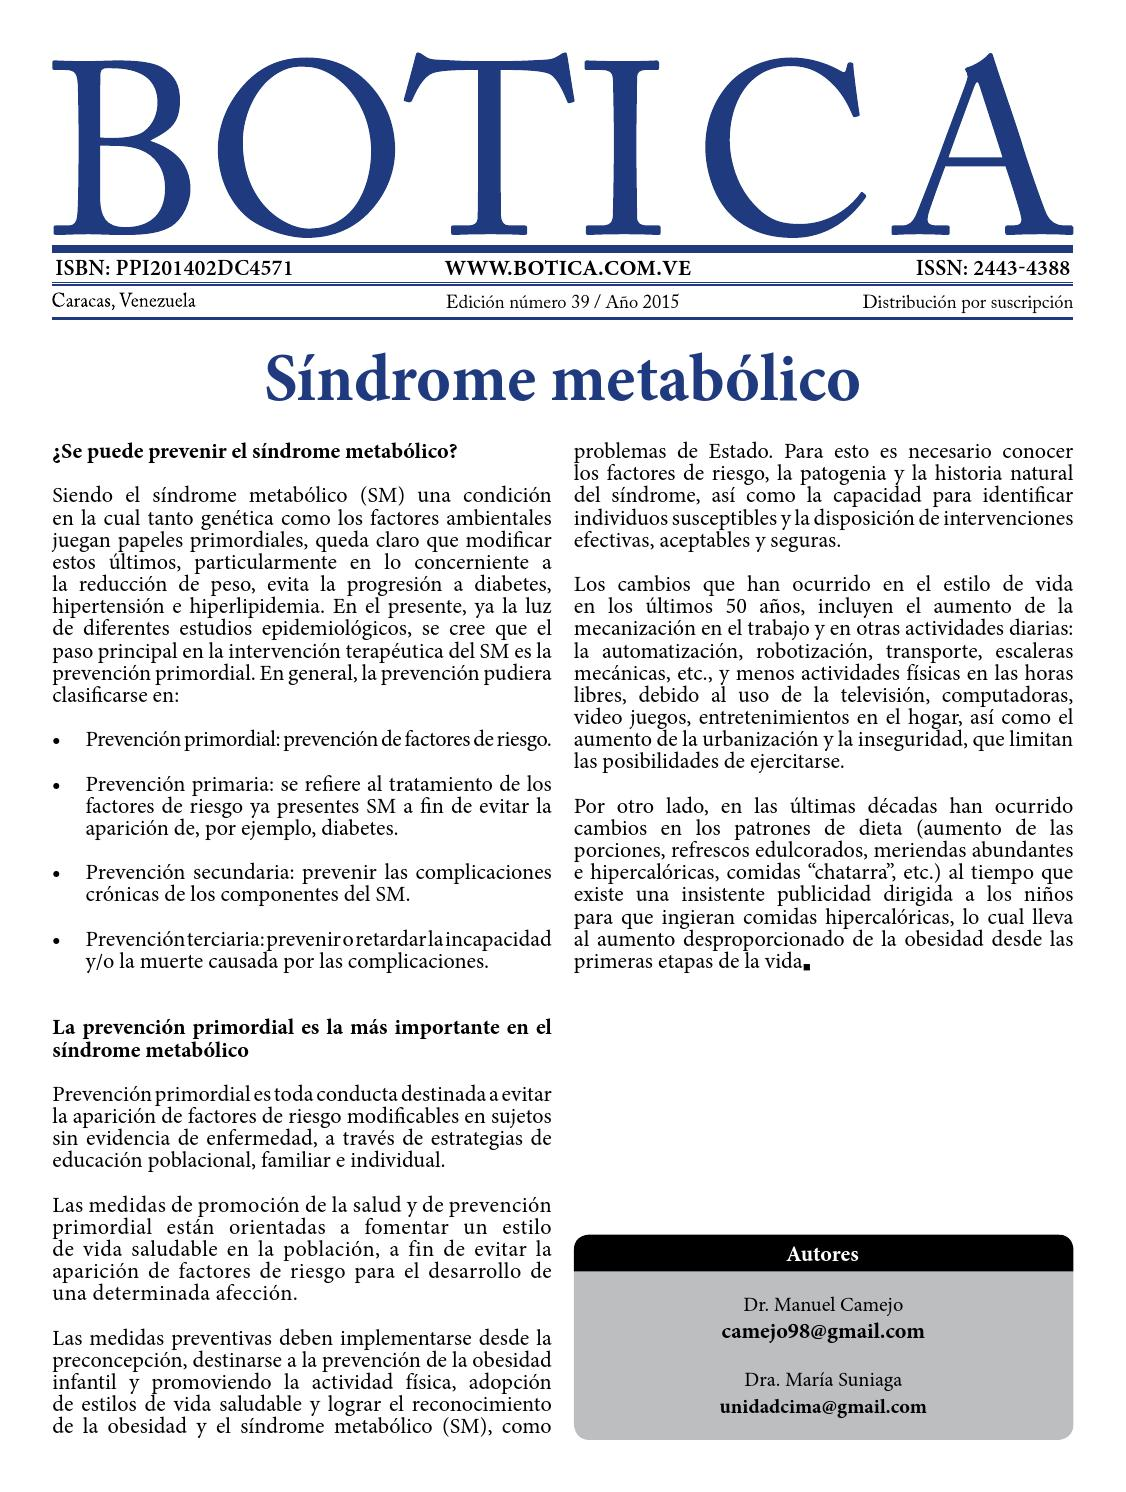 Revista Botica número 39 by Revista médica Botica - issuu